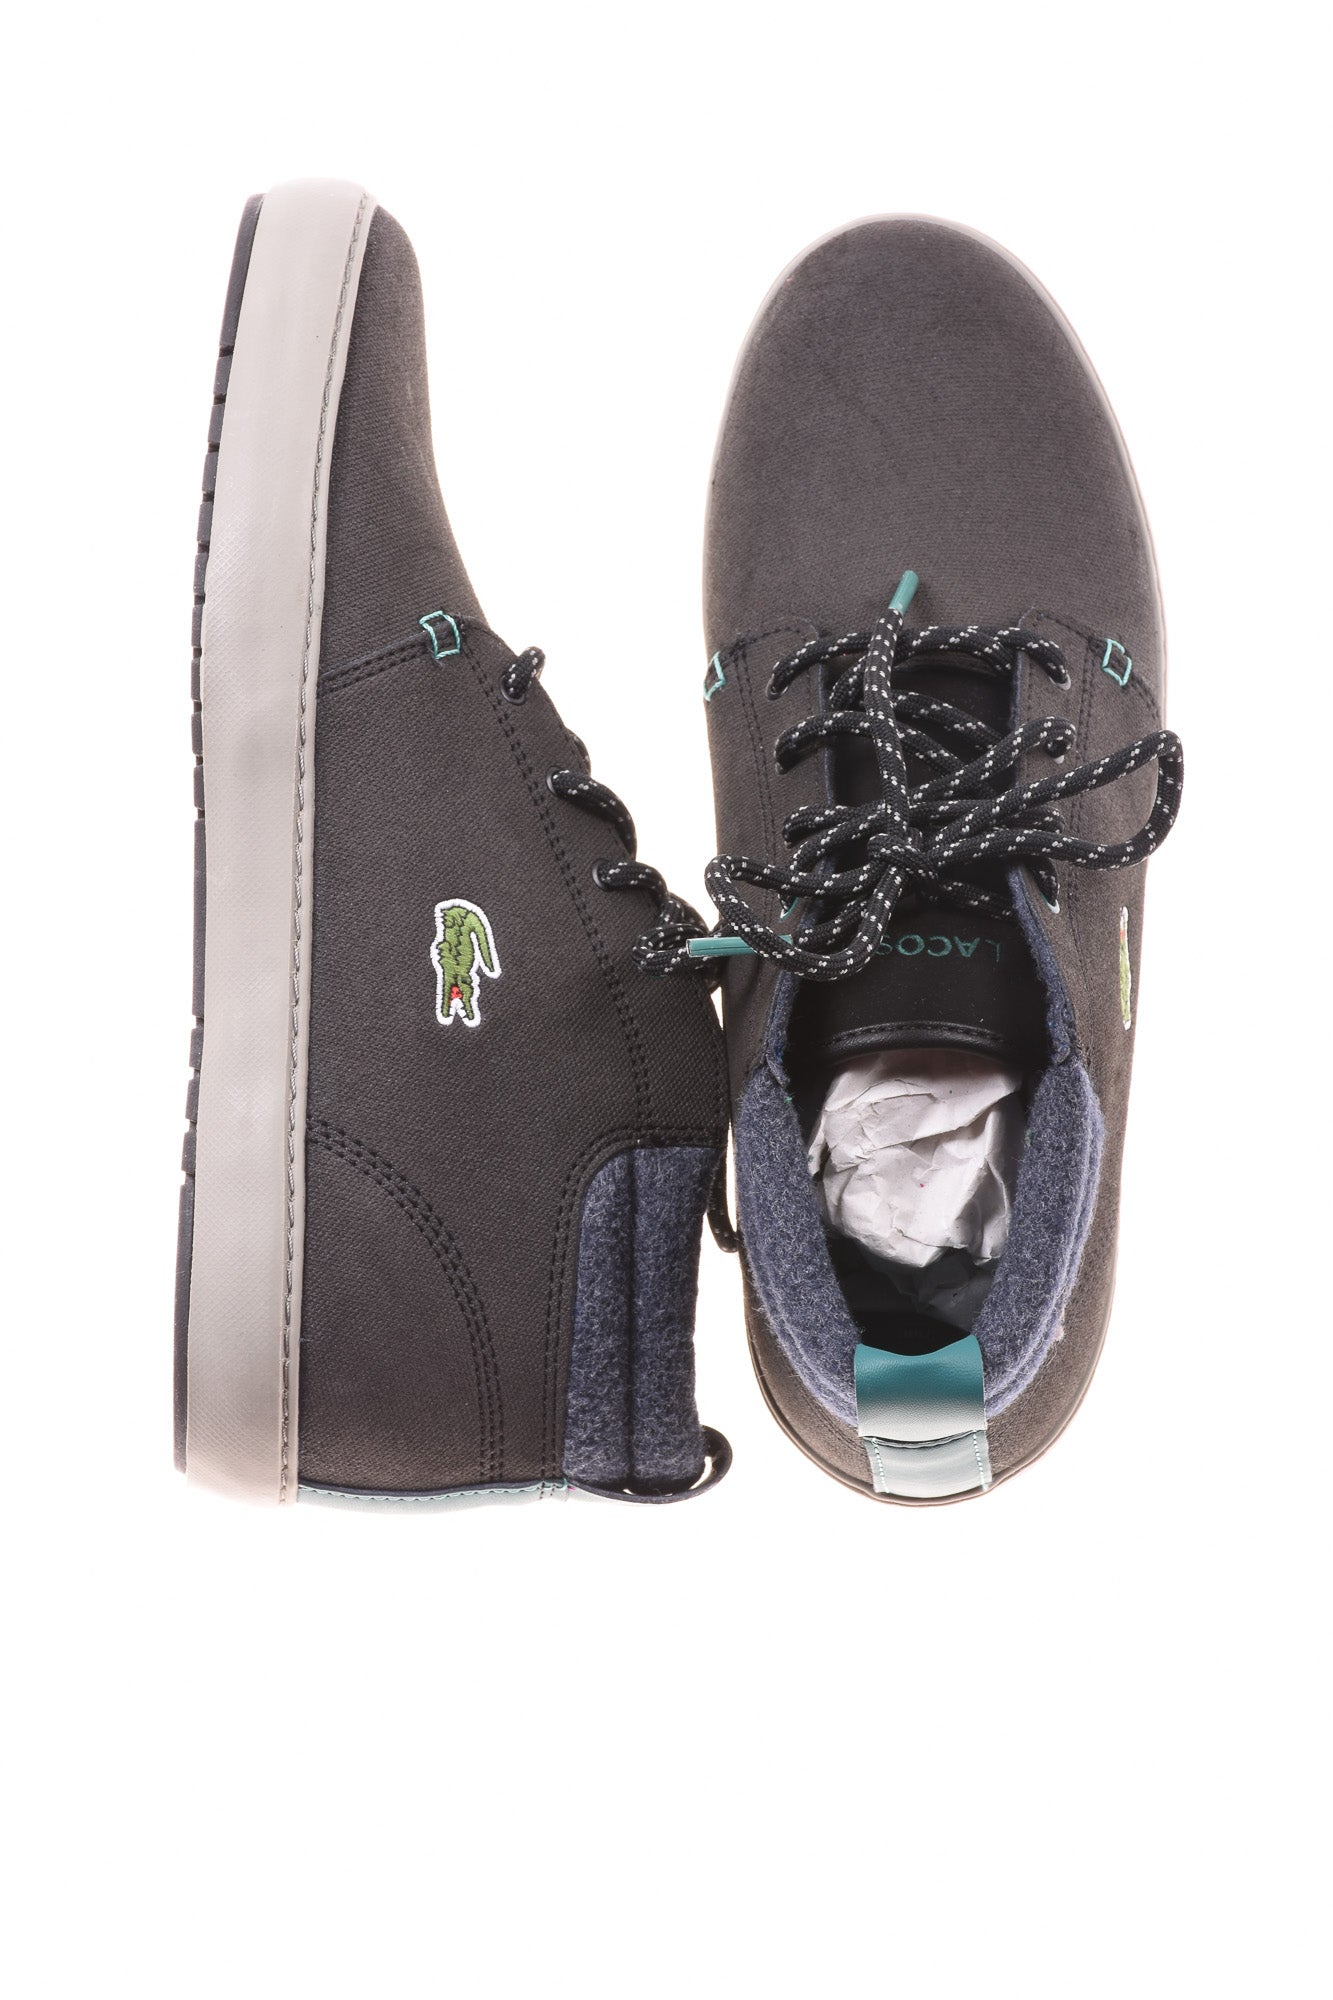 662084761 USED Lacoste Women s Shoes 8 Gray - Village Discount Outlet